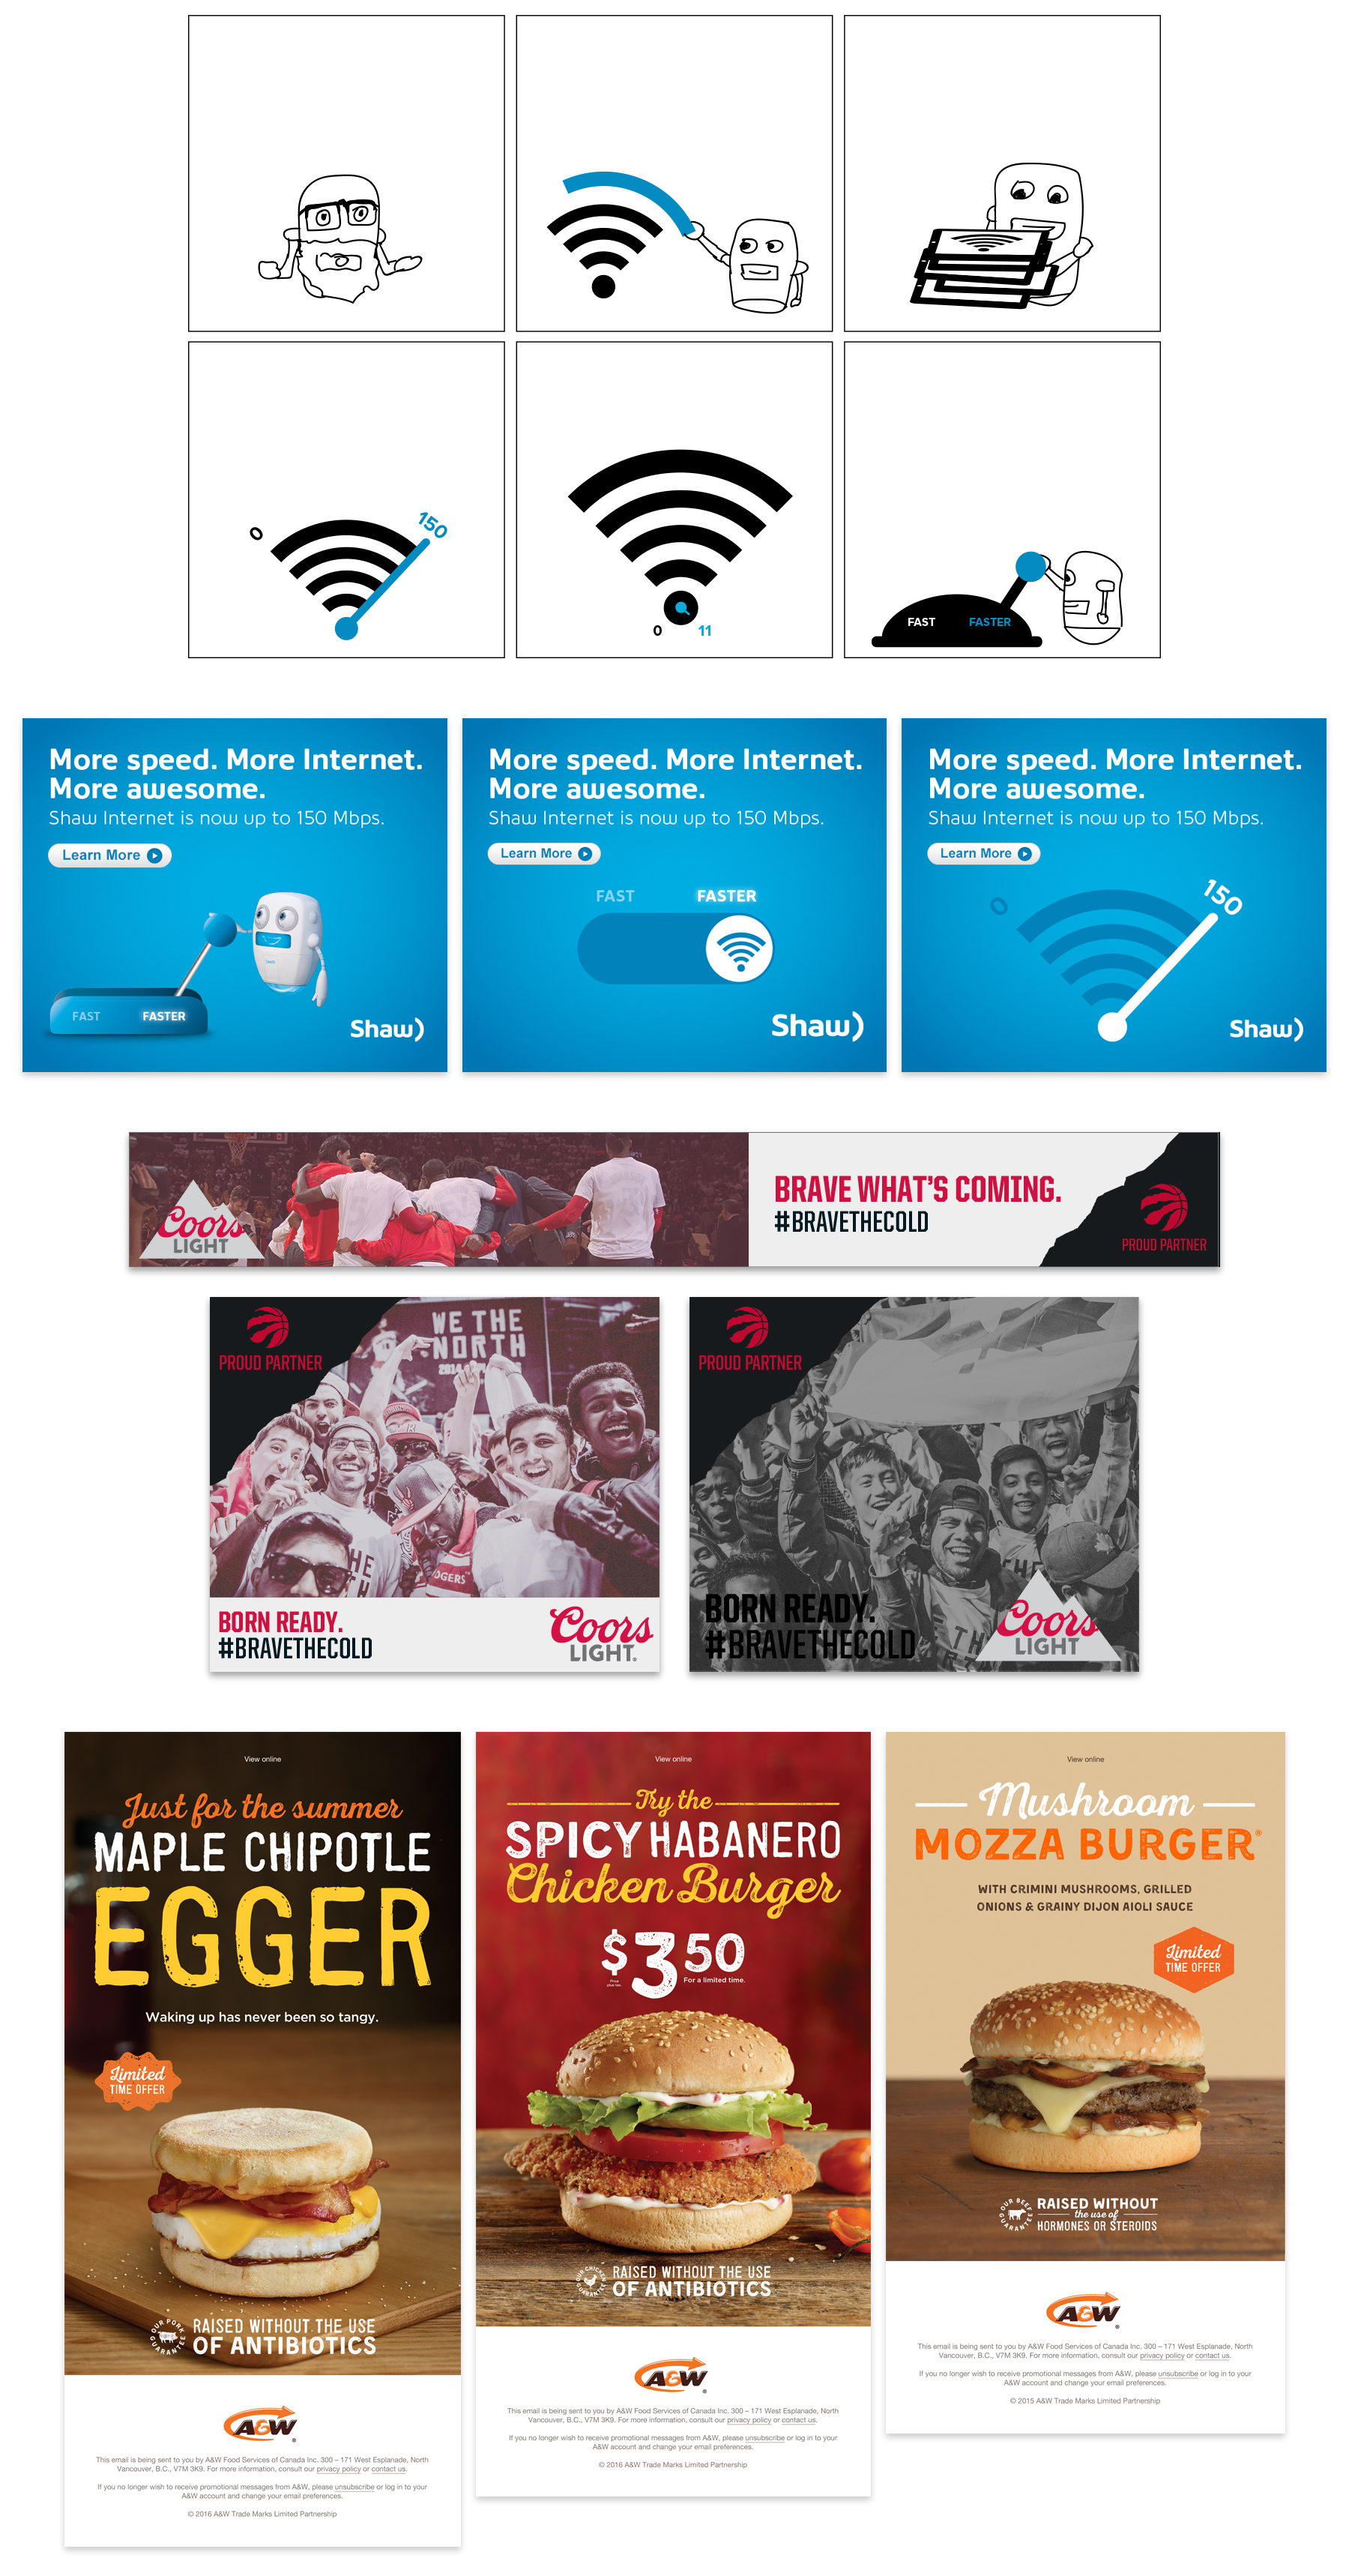 Digital Ads for Shaw, Coors Light, A&W